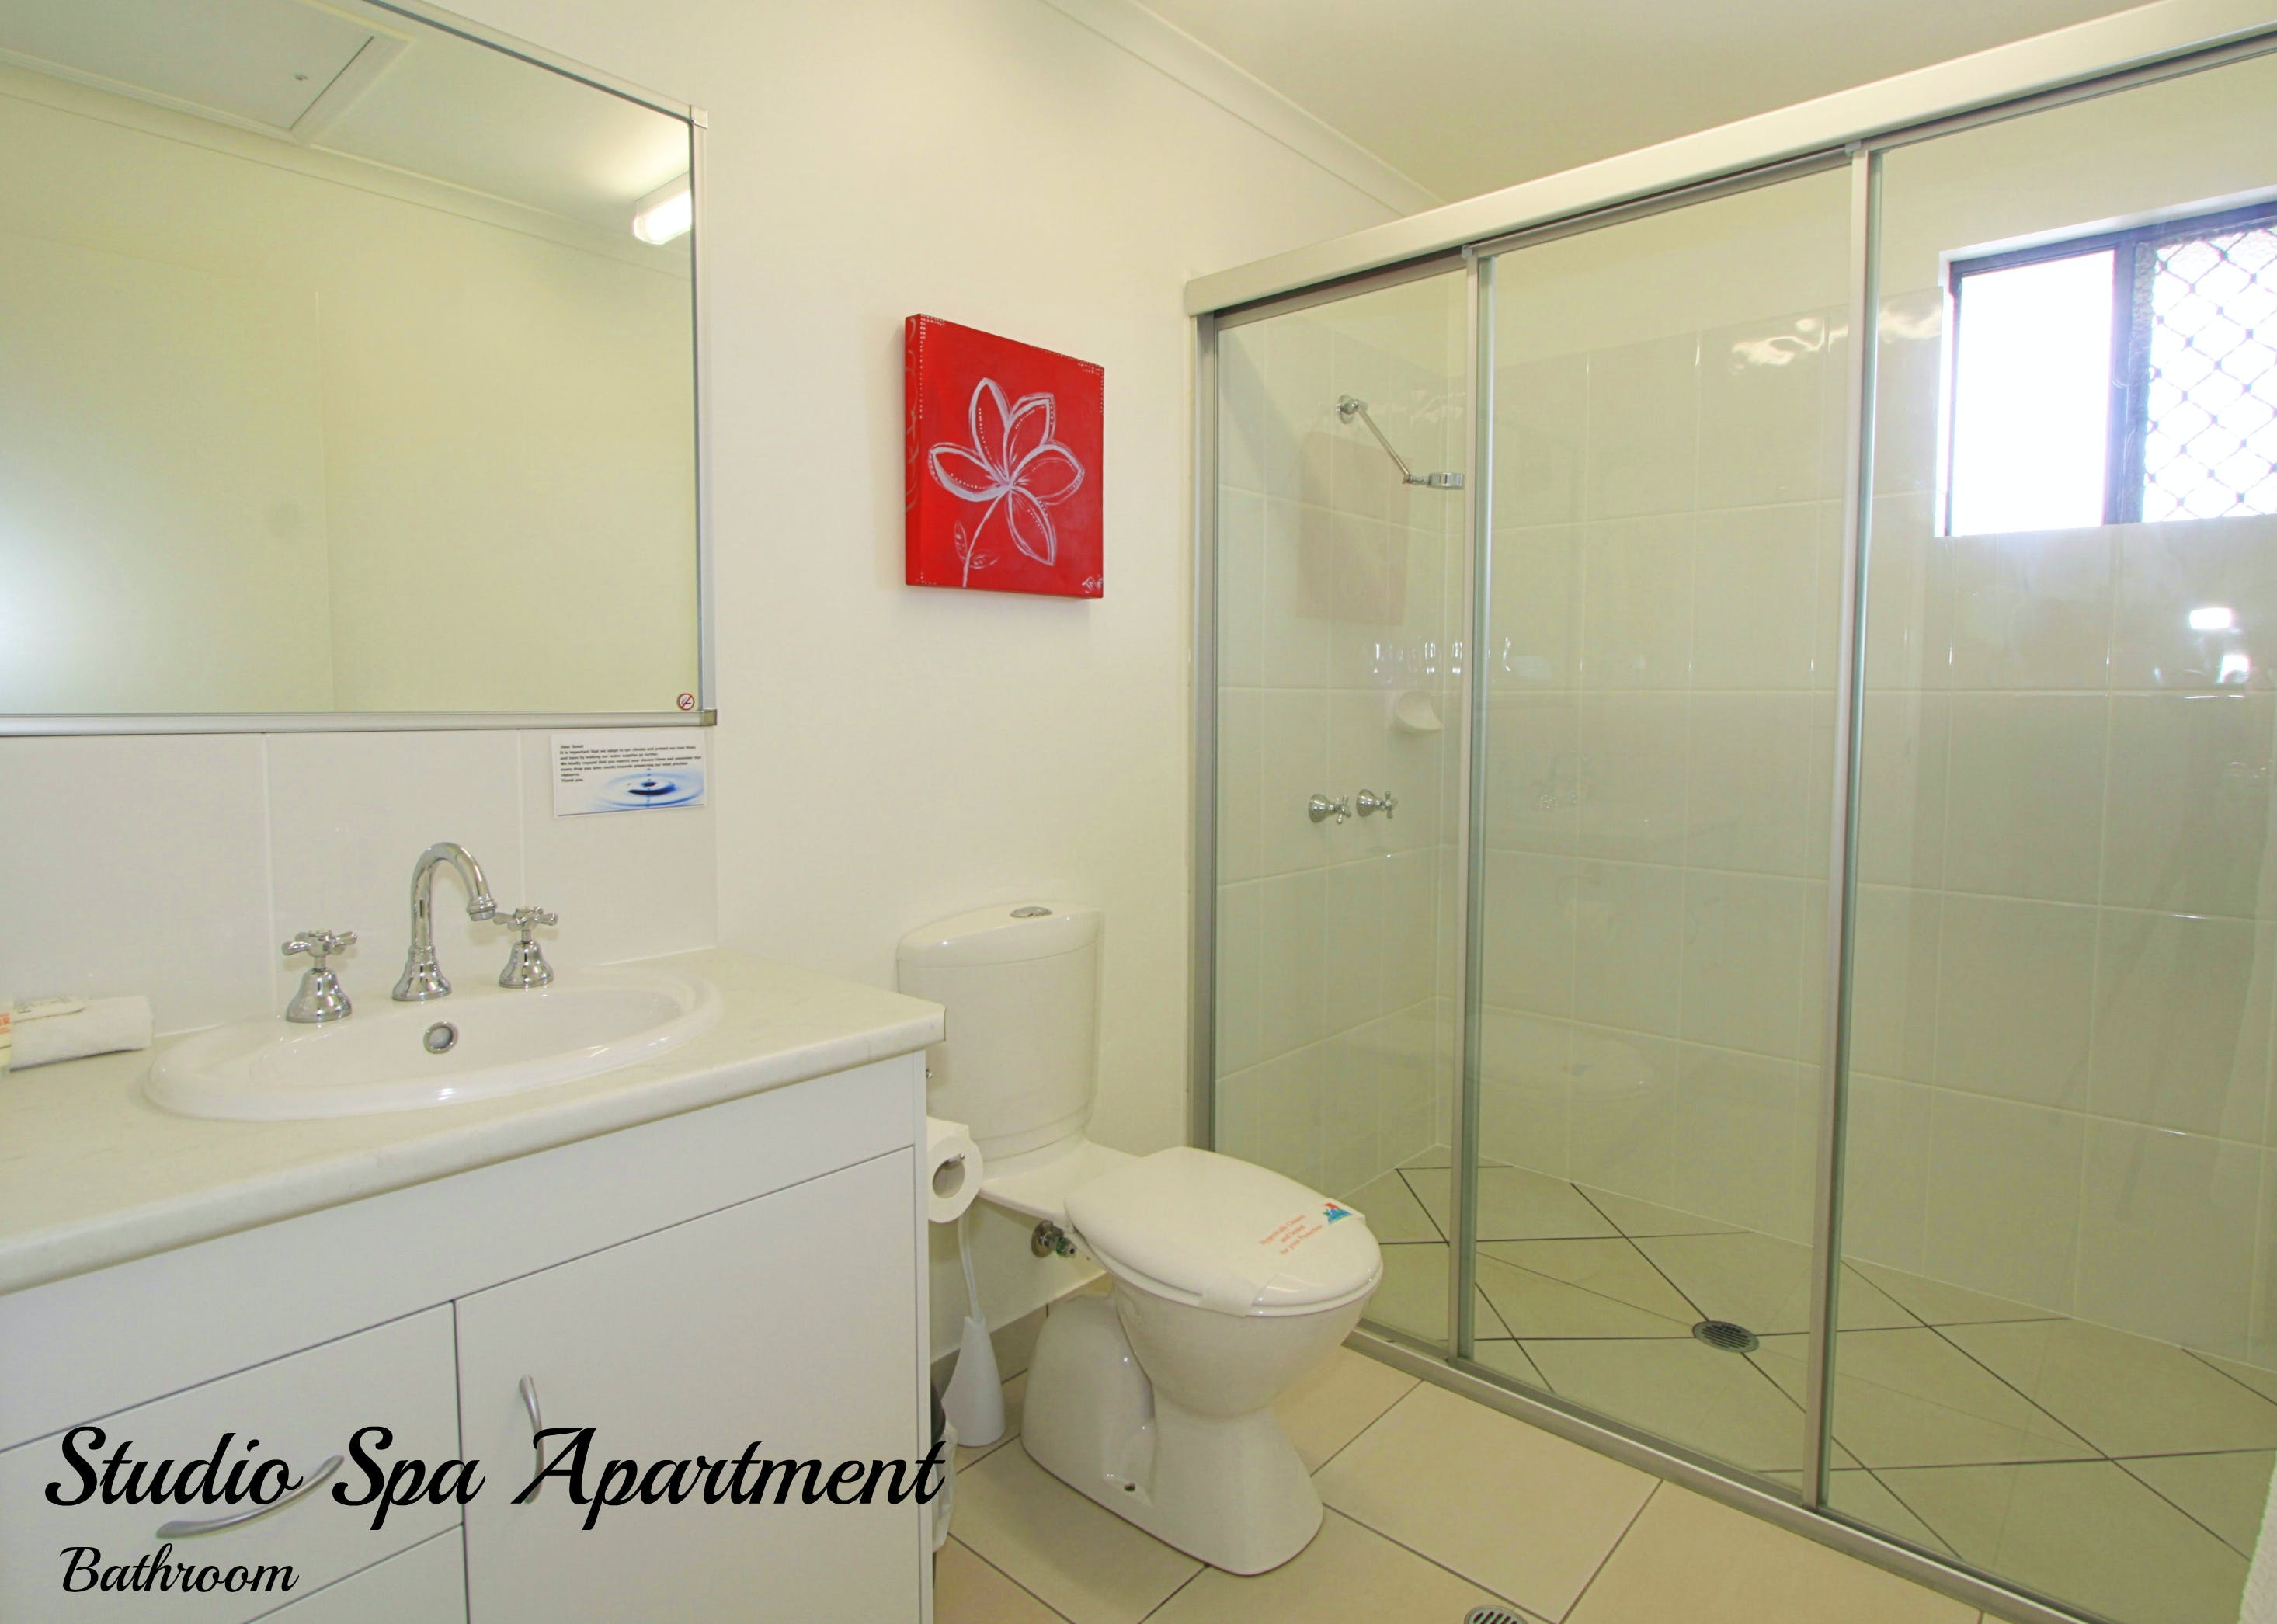 Studio Spa Apartment bathroom